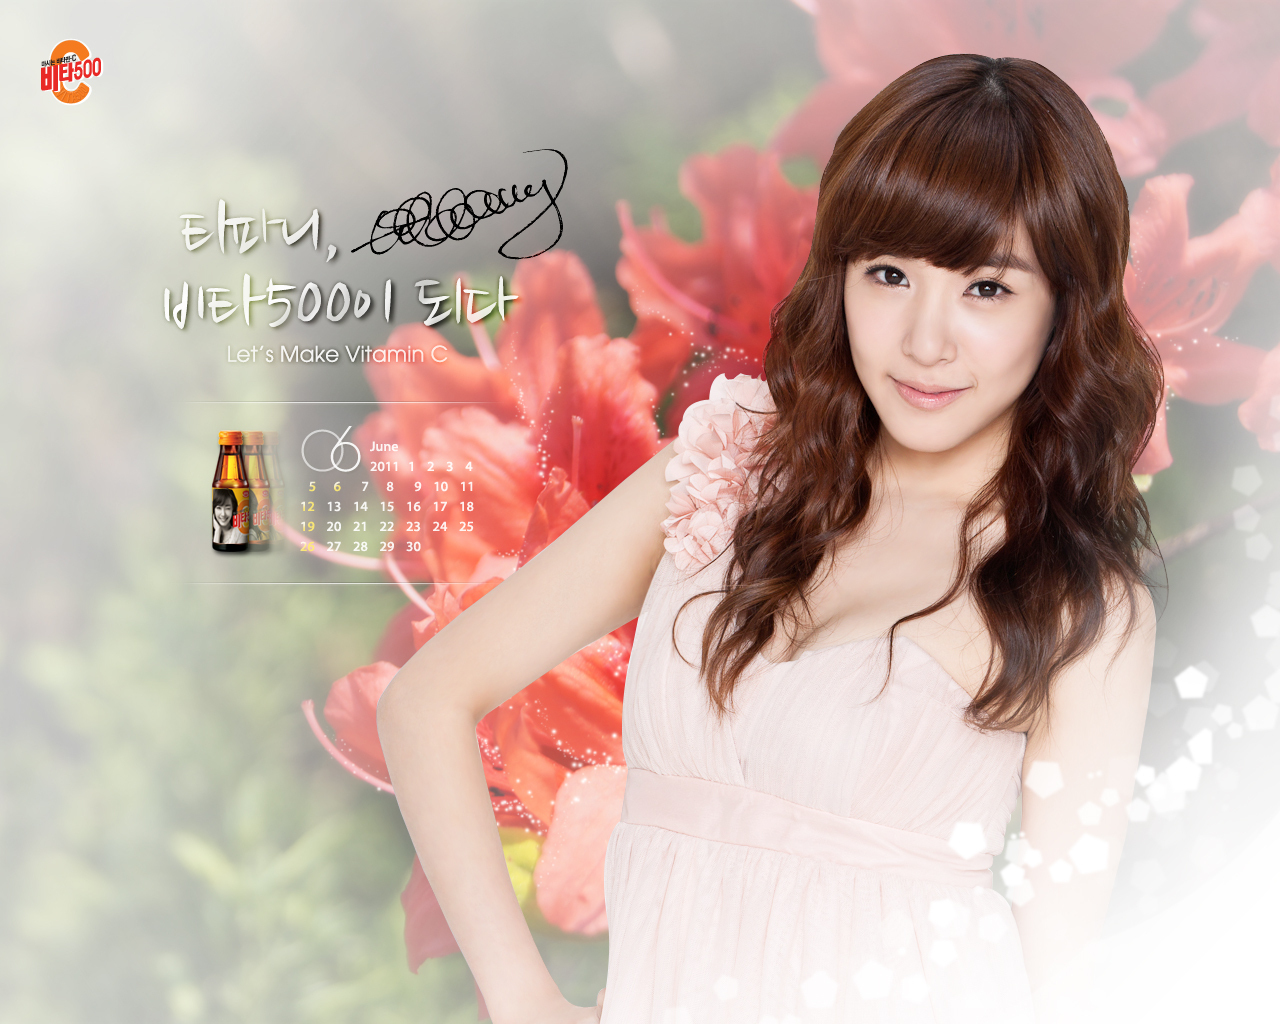 Tiffany SNSD - Picture Colection